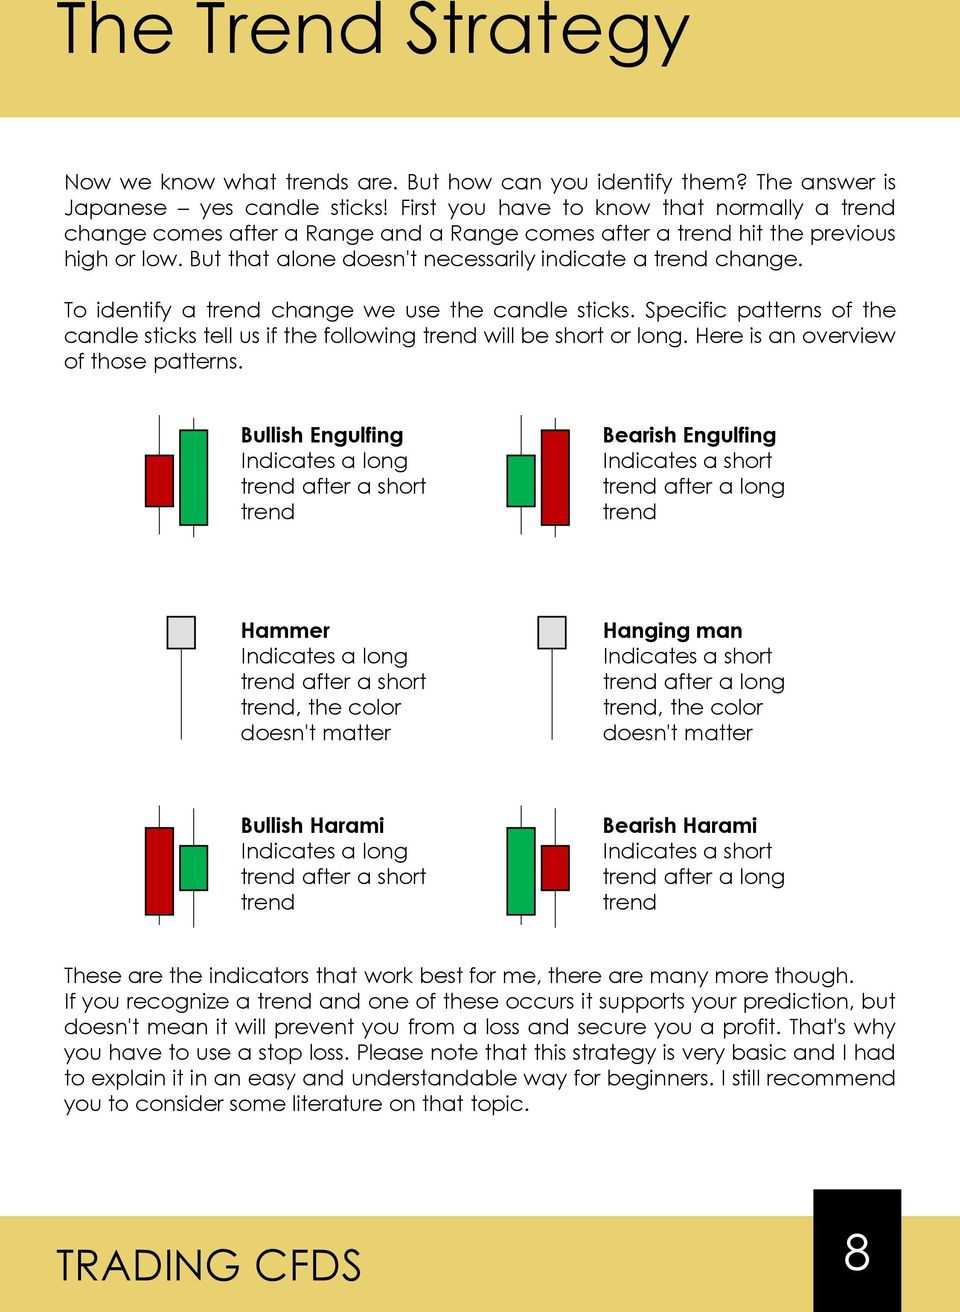 To identify a trend change we use the candle sticks. Specific patterns of the candle sticks tell us if the following trend will be short or long. Here is an overview of those patterns.